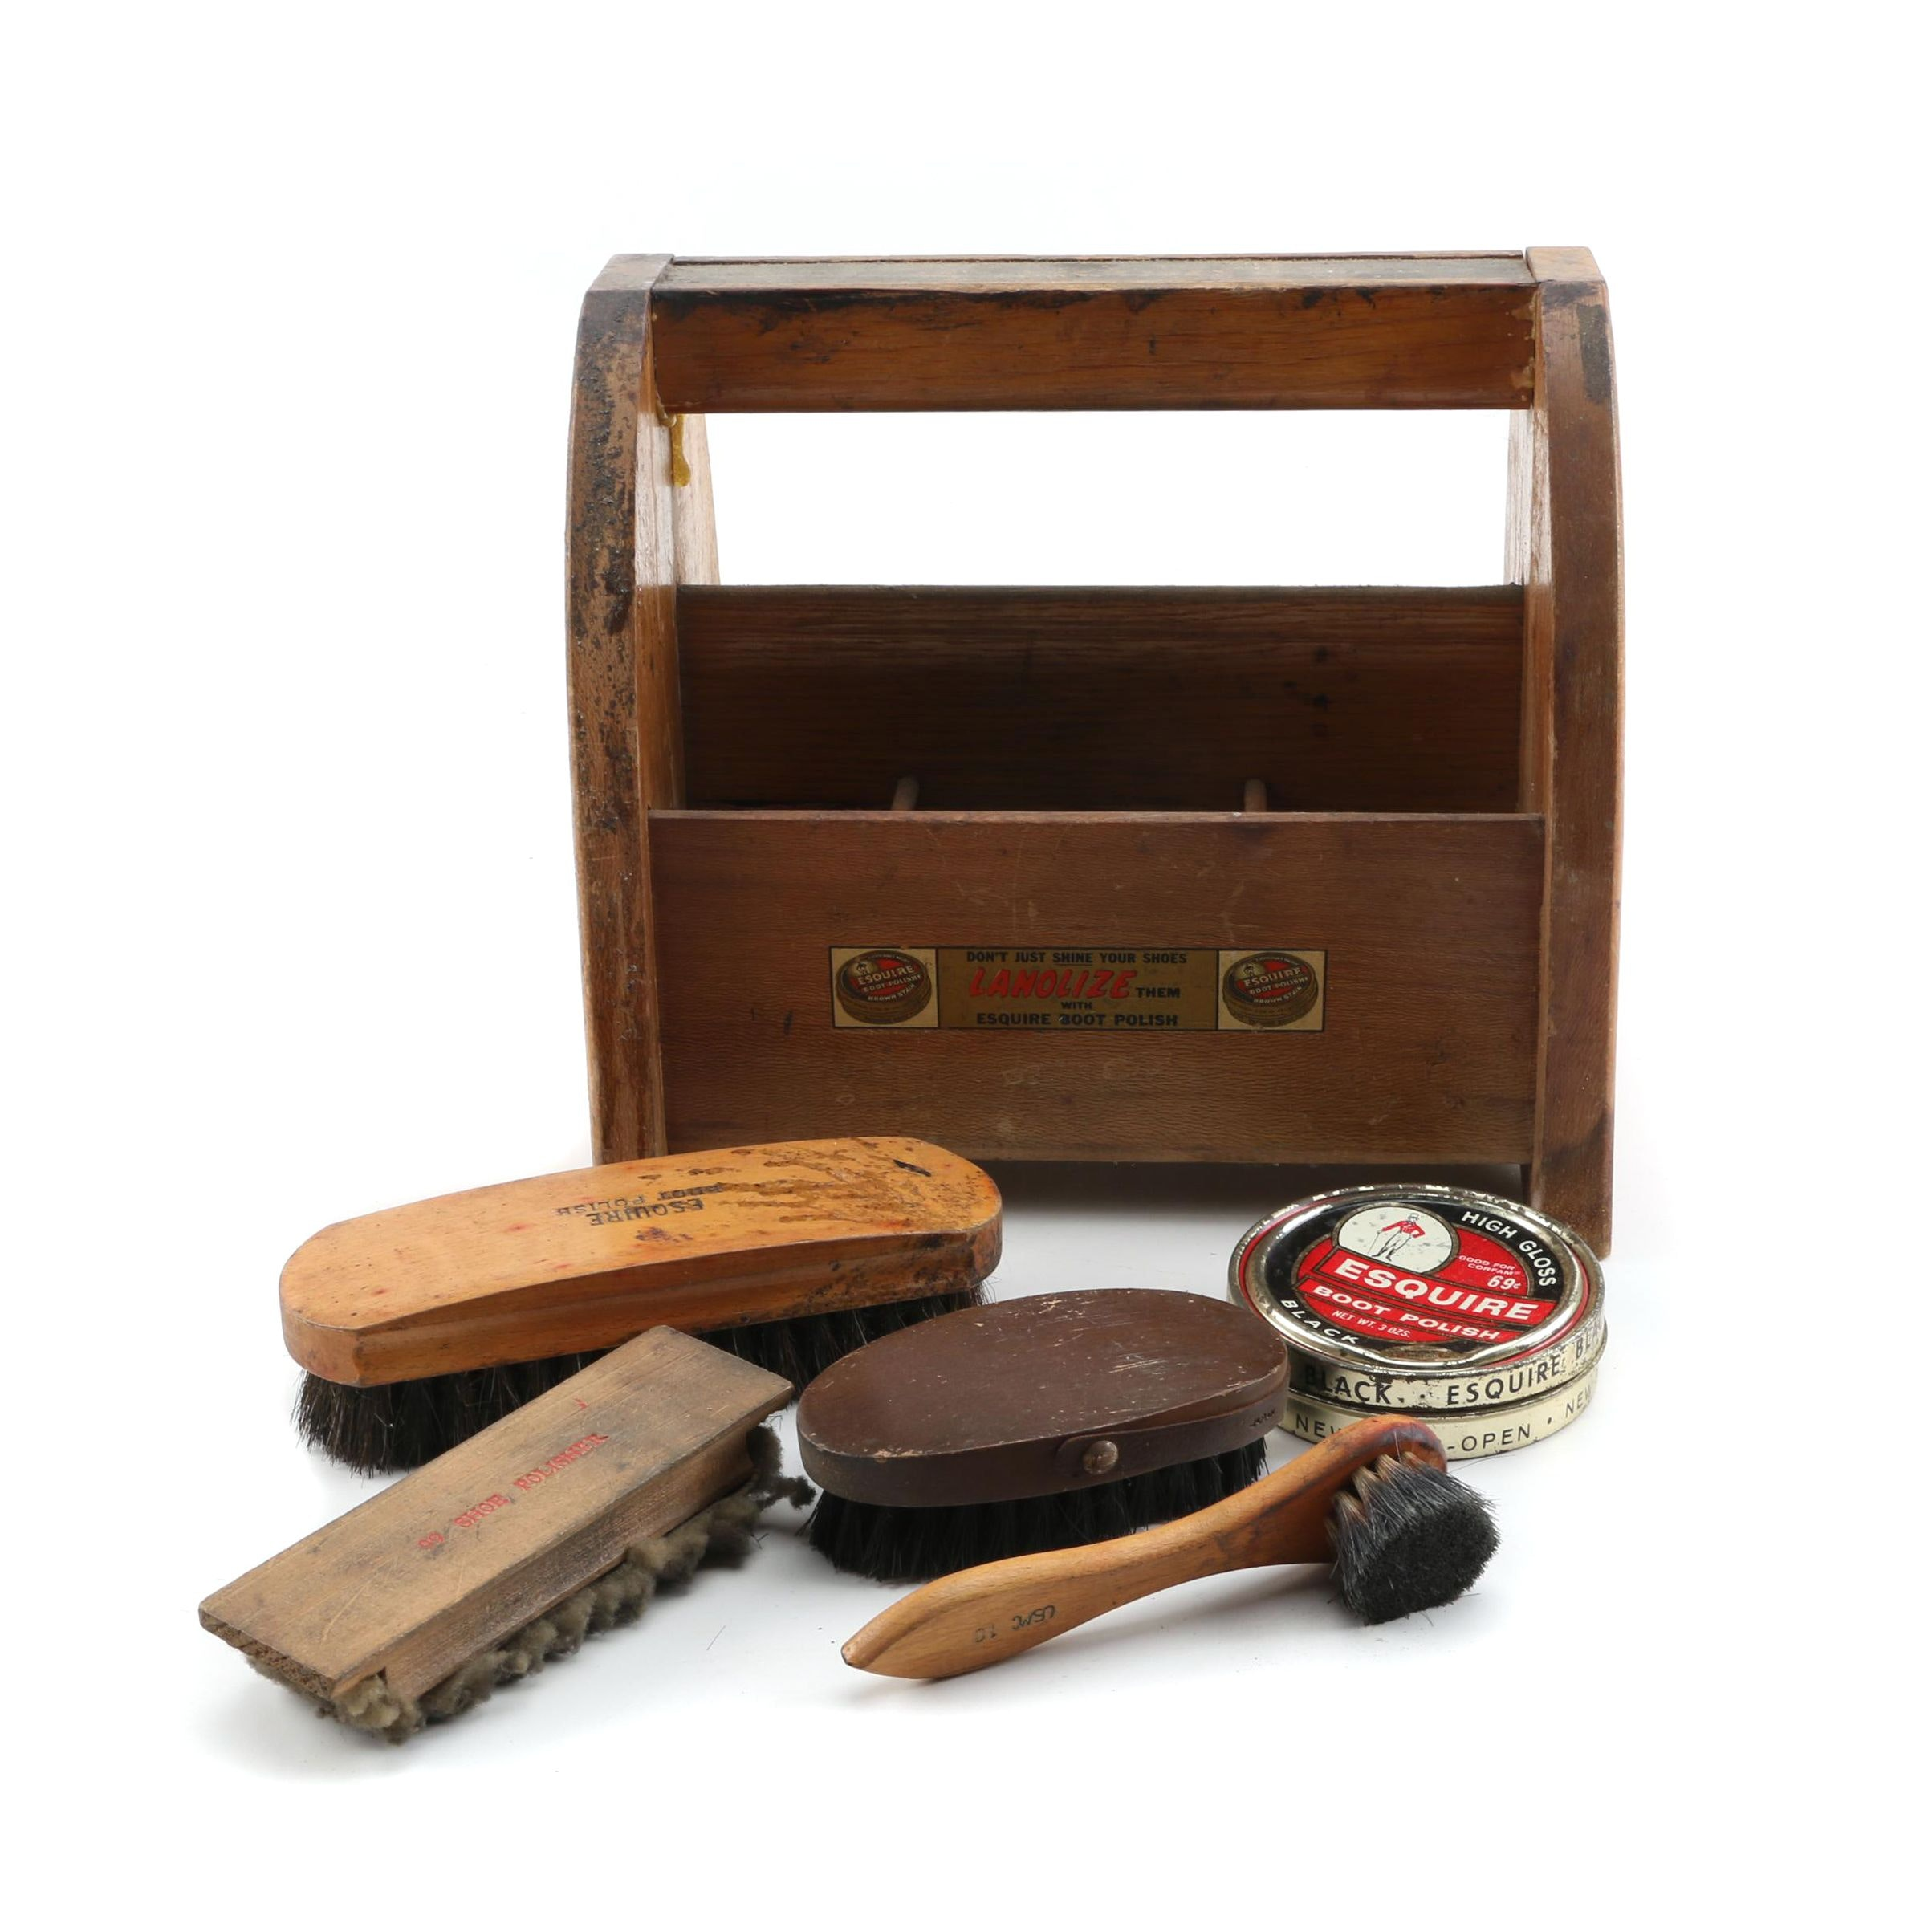 Vintage Esquire Boot Polish Shoe Shine Kit